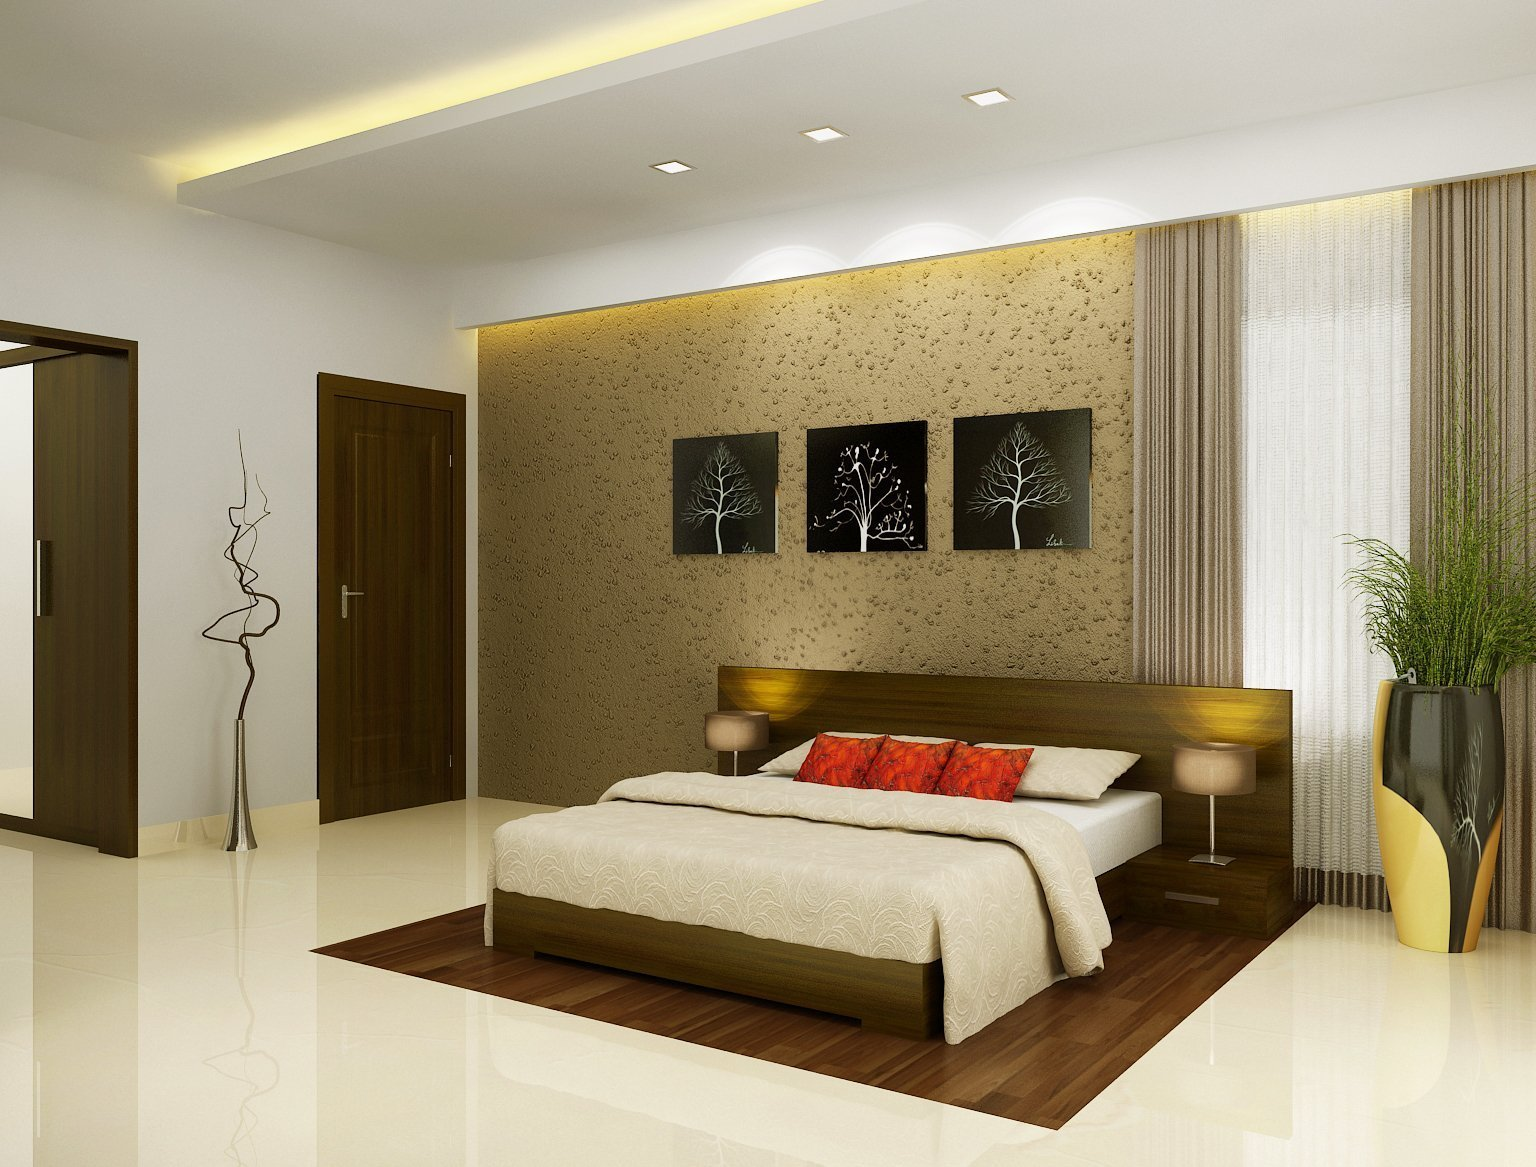 Best Comfortable Bedroom Design Kerala Style Nicheone With Pictures